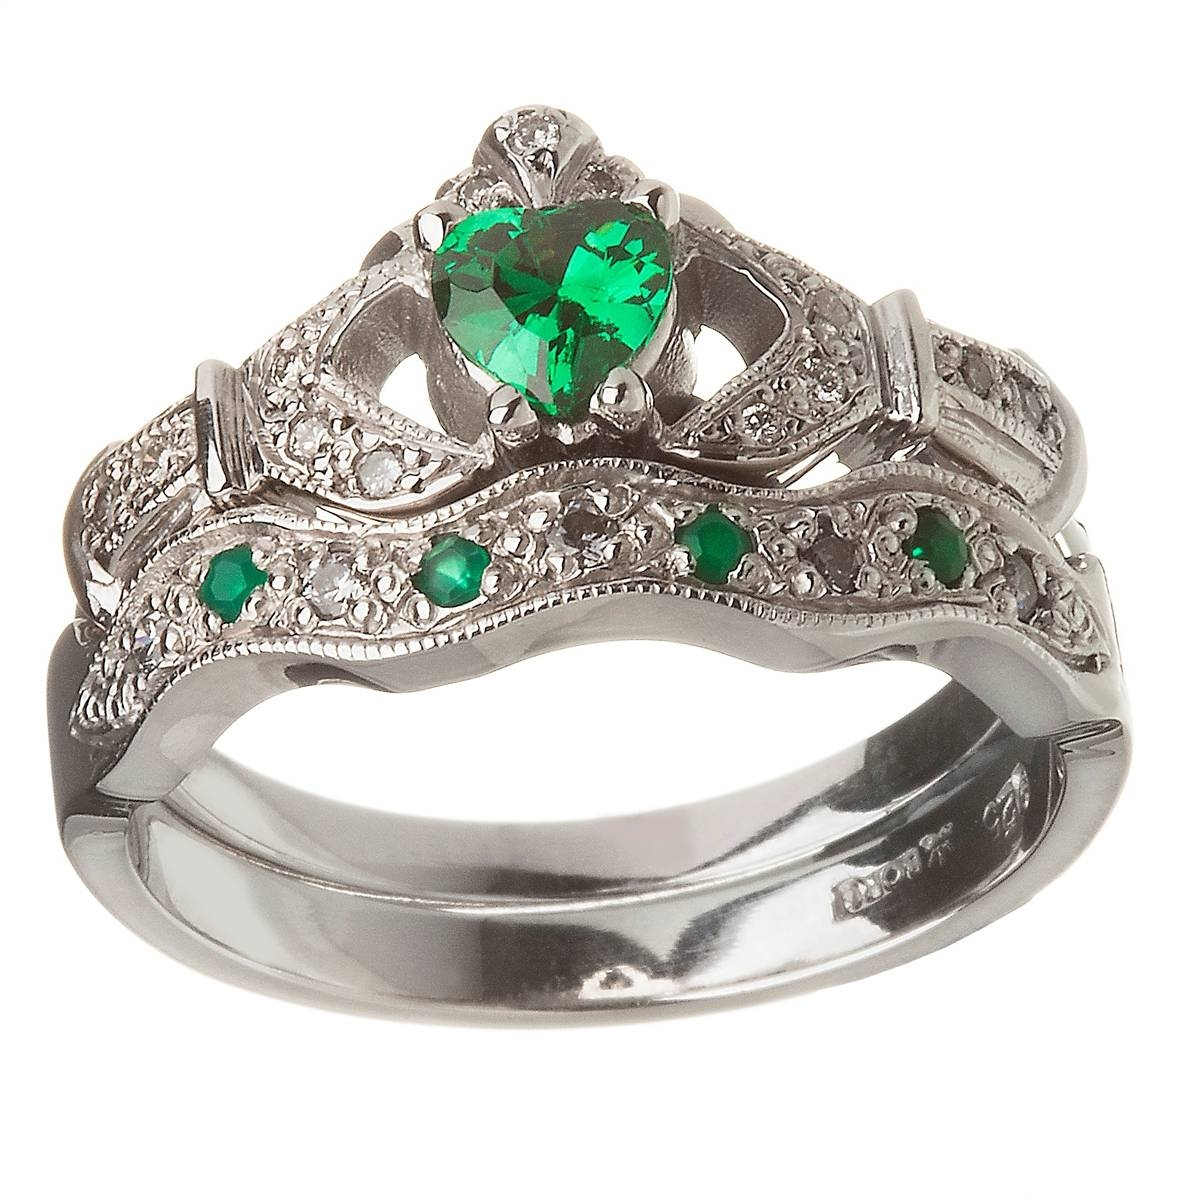 14k White Gold Emerald Set Heart Claddagh Ring & Wedding Ring Set With Claddagh Diamond Engagement Rings (View 5 of 15)